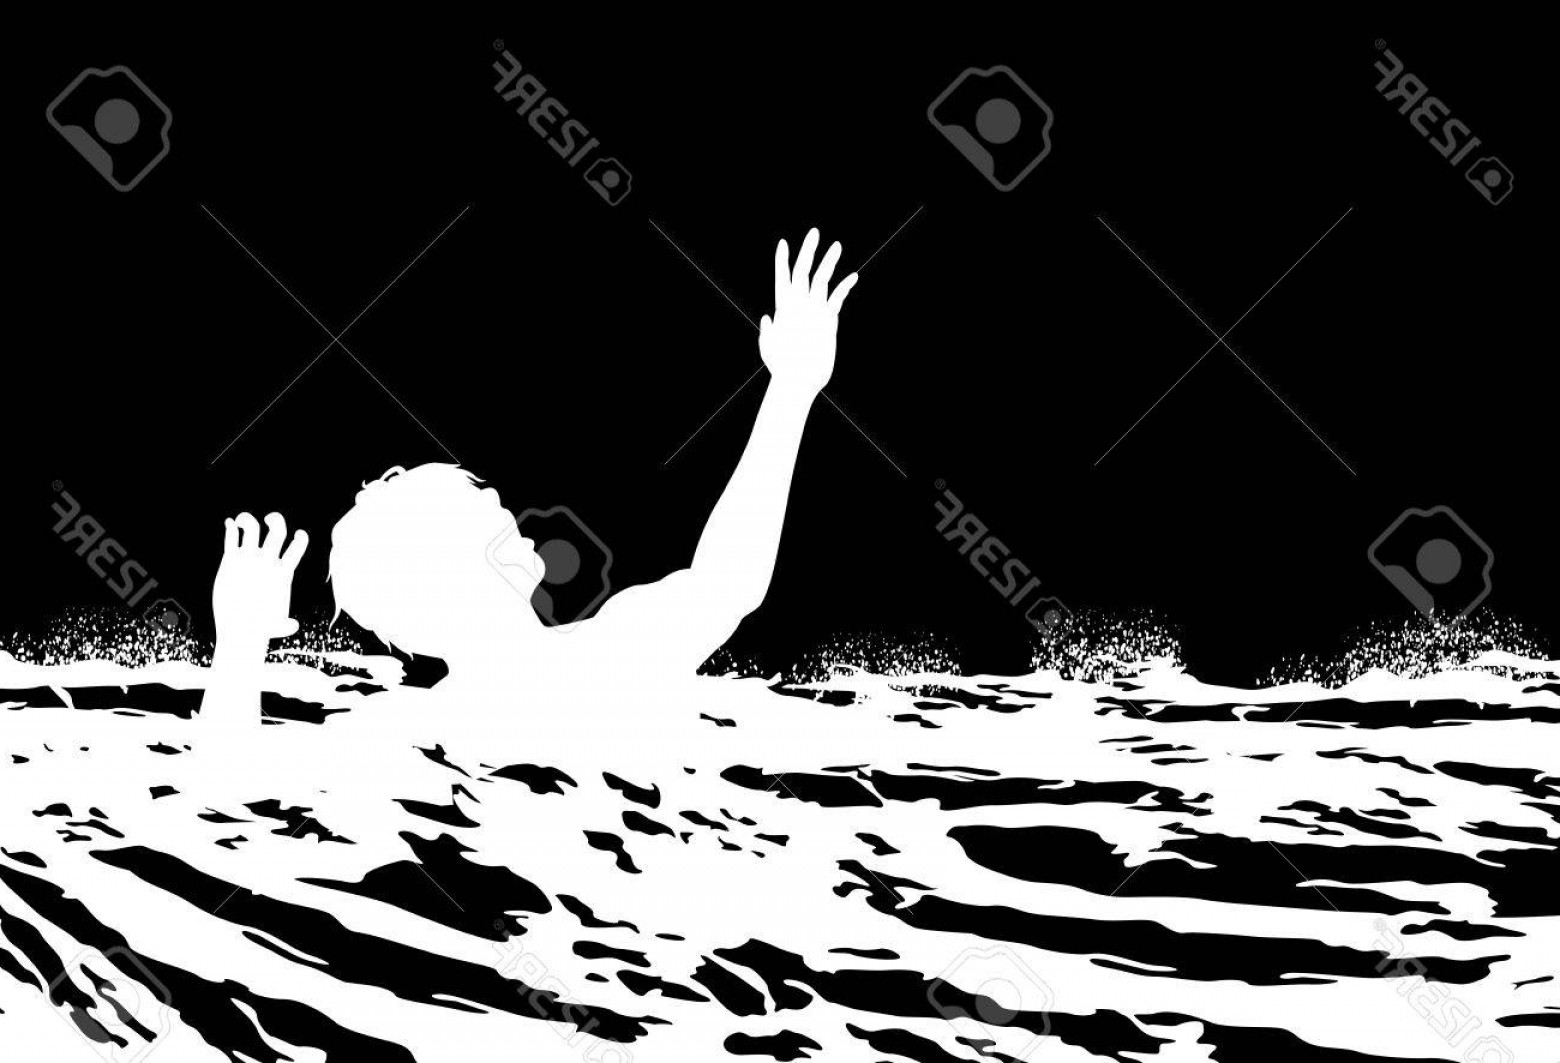 Man Drowning Vector: Photostock Vector Illustration Of A Man Drowning In Rough Water